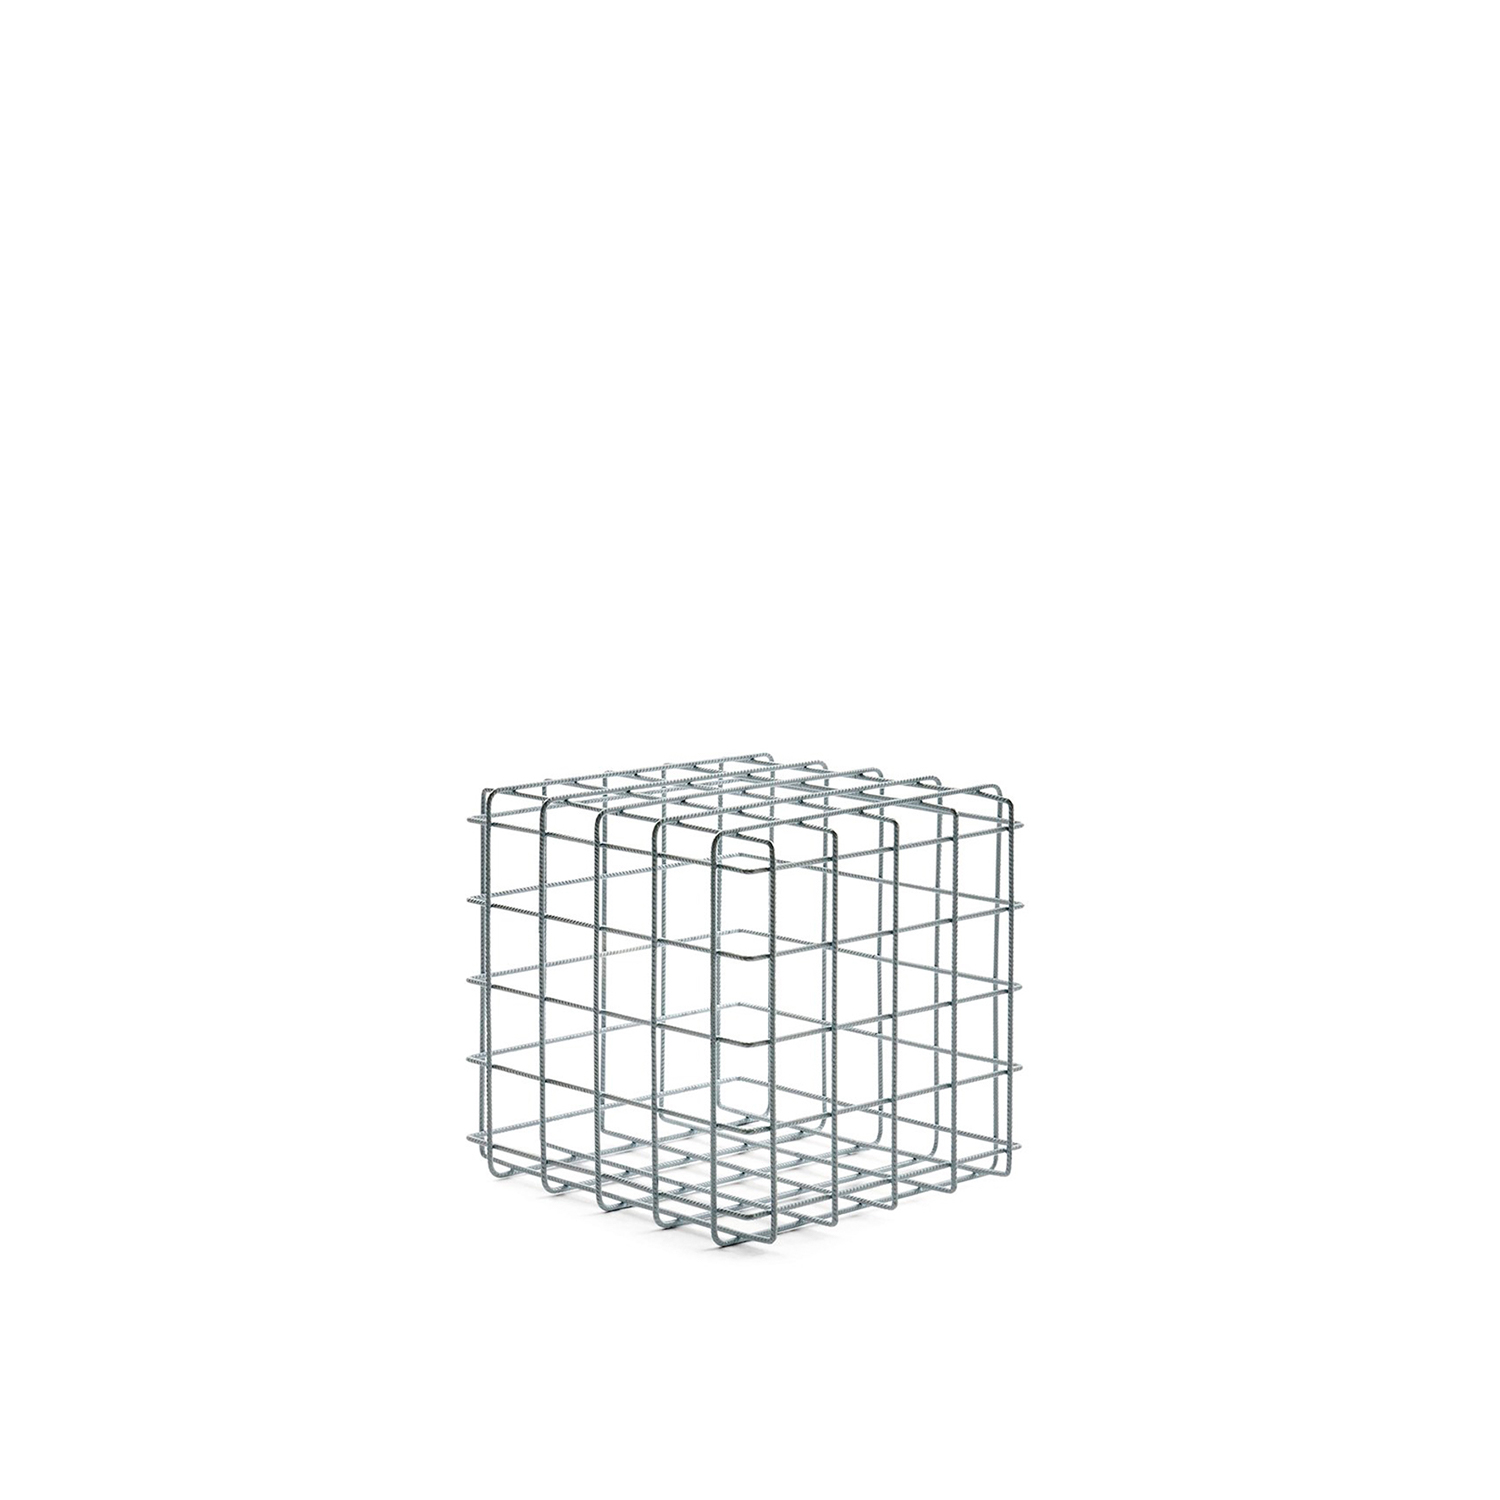 Leyva Coffee Table - The Leyva table is made of painted iron rods welded into a grille of uniform squares. Sophisticated and non-intrusive, Leyva decorates the living room with a light, contemporary touch. Available in black or white.  Materials: Structure in iron rod with diameter 6 mm painted and welded into a grille of regular squares approximately 8 x 8 cm. | Matter of Stuff